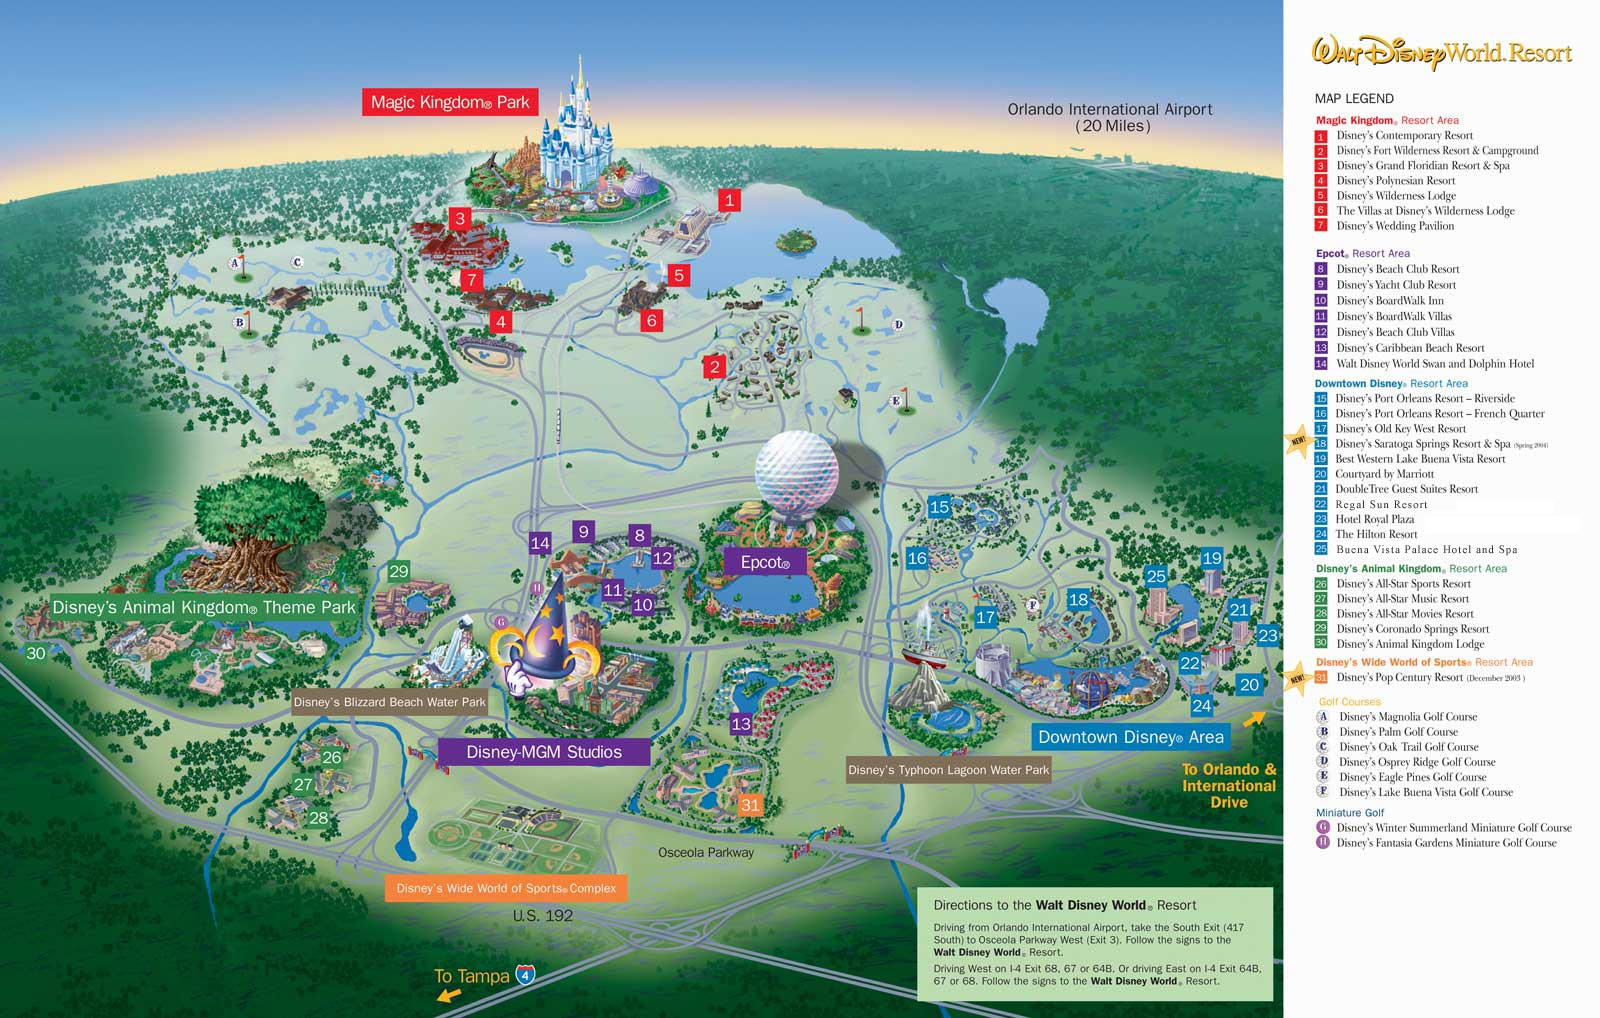 Walt Disney World Resort Map Olp Travel News